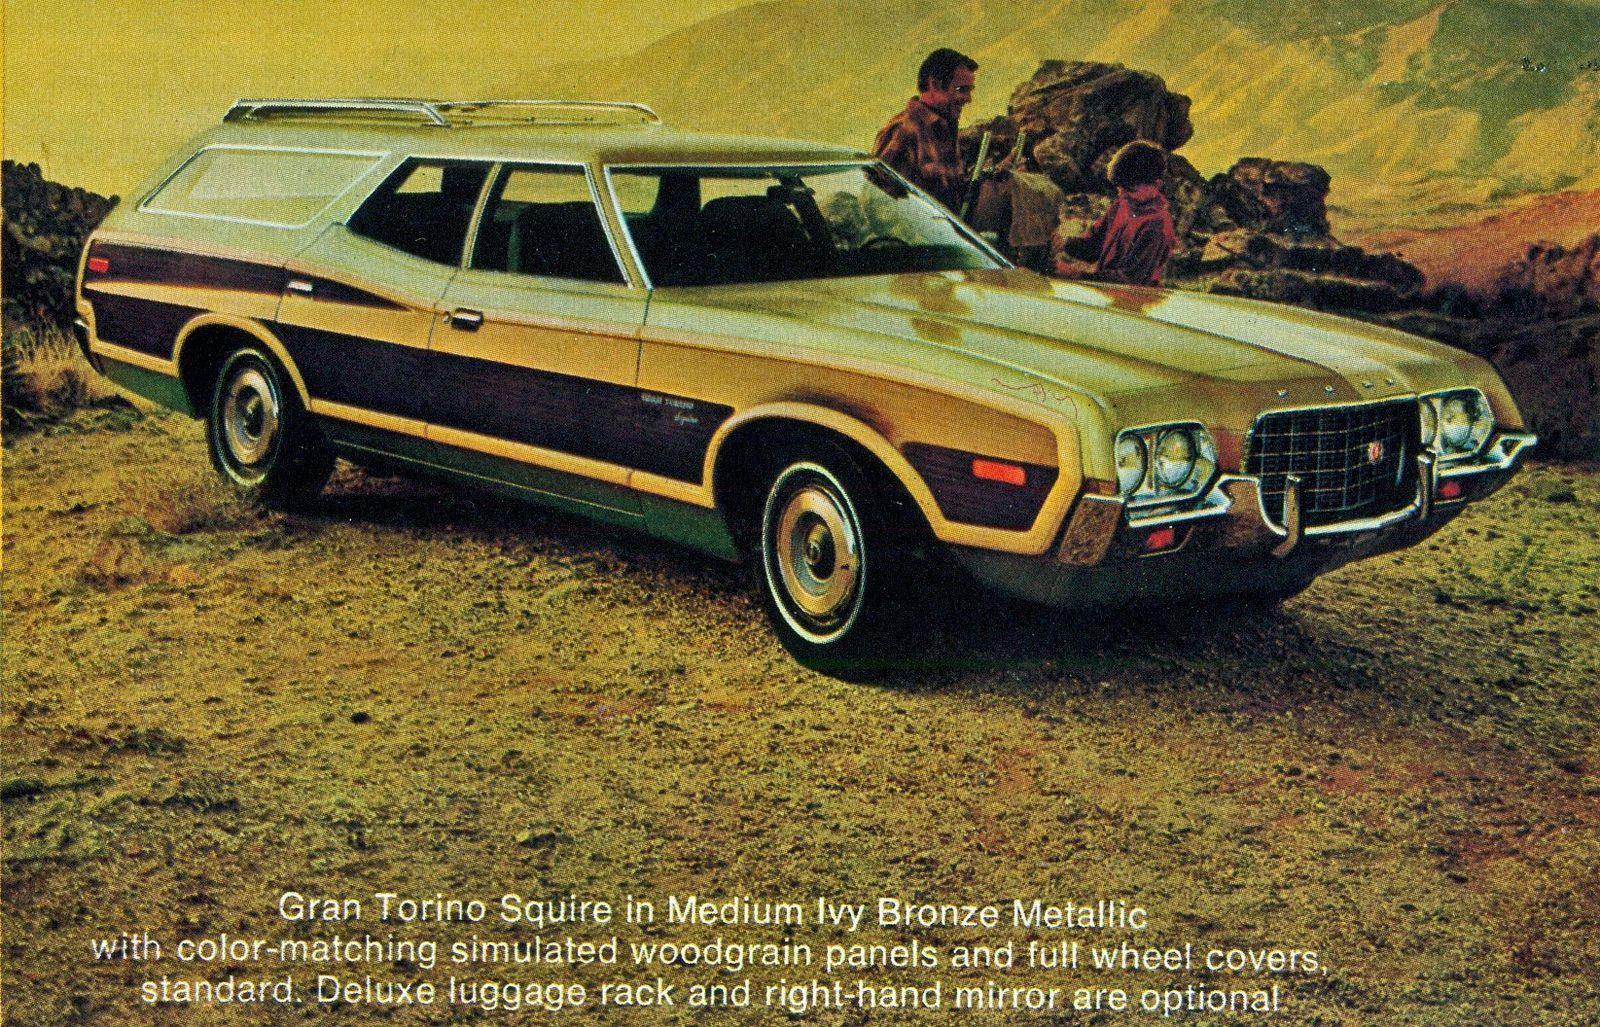 1972 Ford Gran Torino Squire Station Wagon Station Wagon Ford